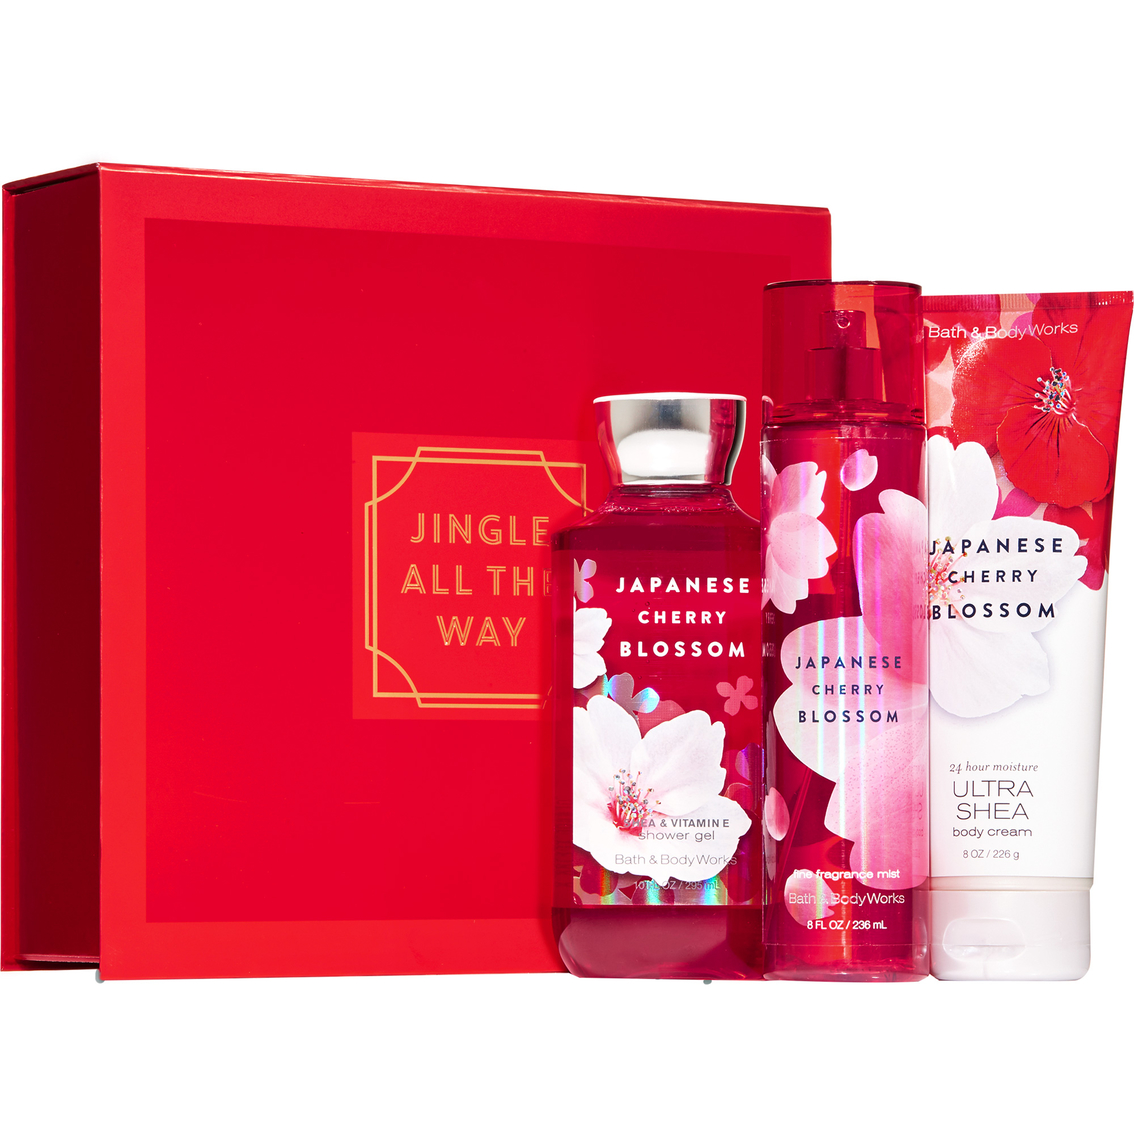 Bath Body Works Giftset Jcb Holiday Full Size Trio Easel Box Body Bath Gift Sets Beauty Health Shop The Exchange